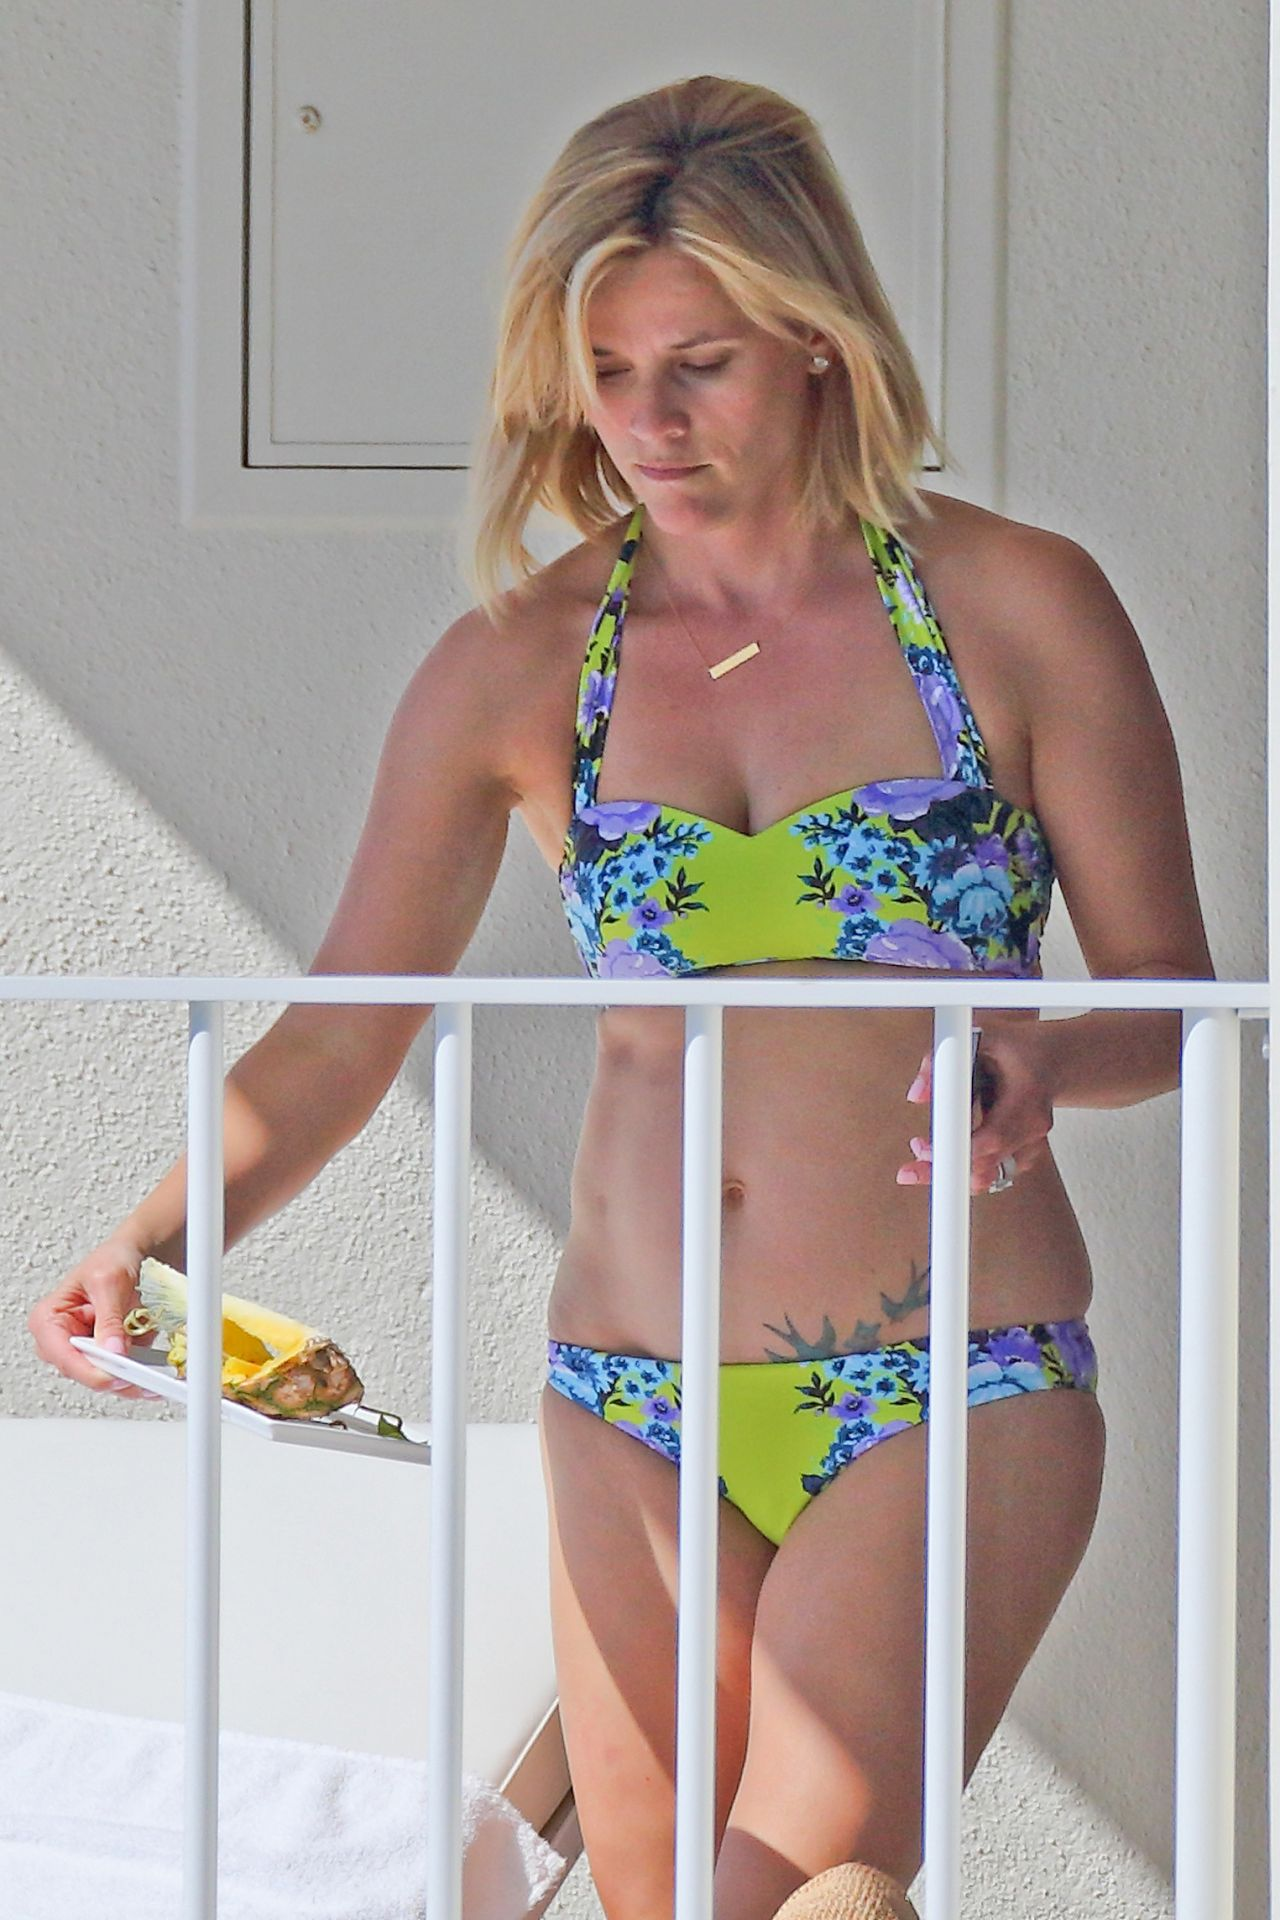 Reese Witherspoon in a Bikini - Hawaii, January 2014